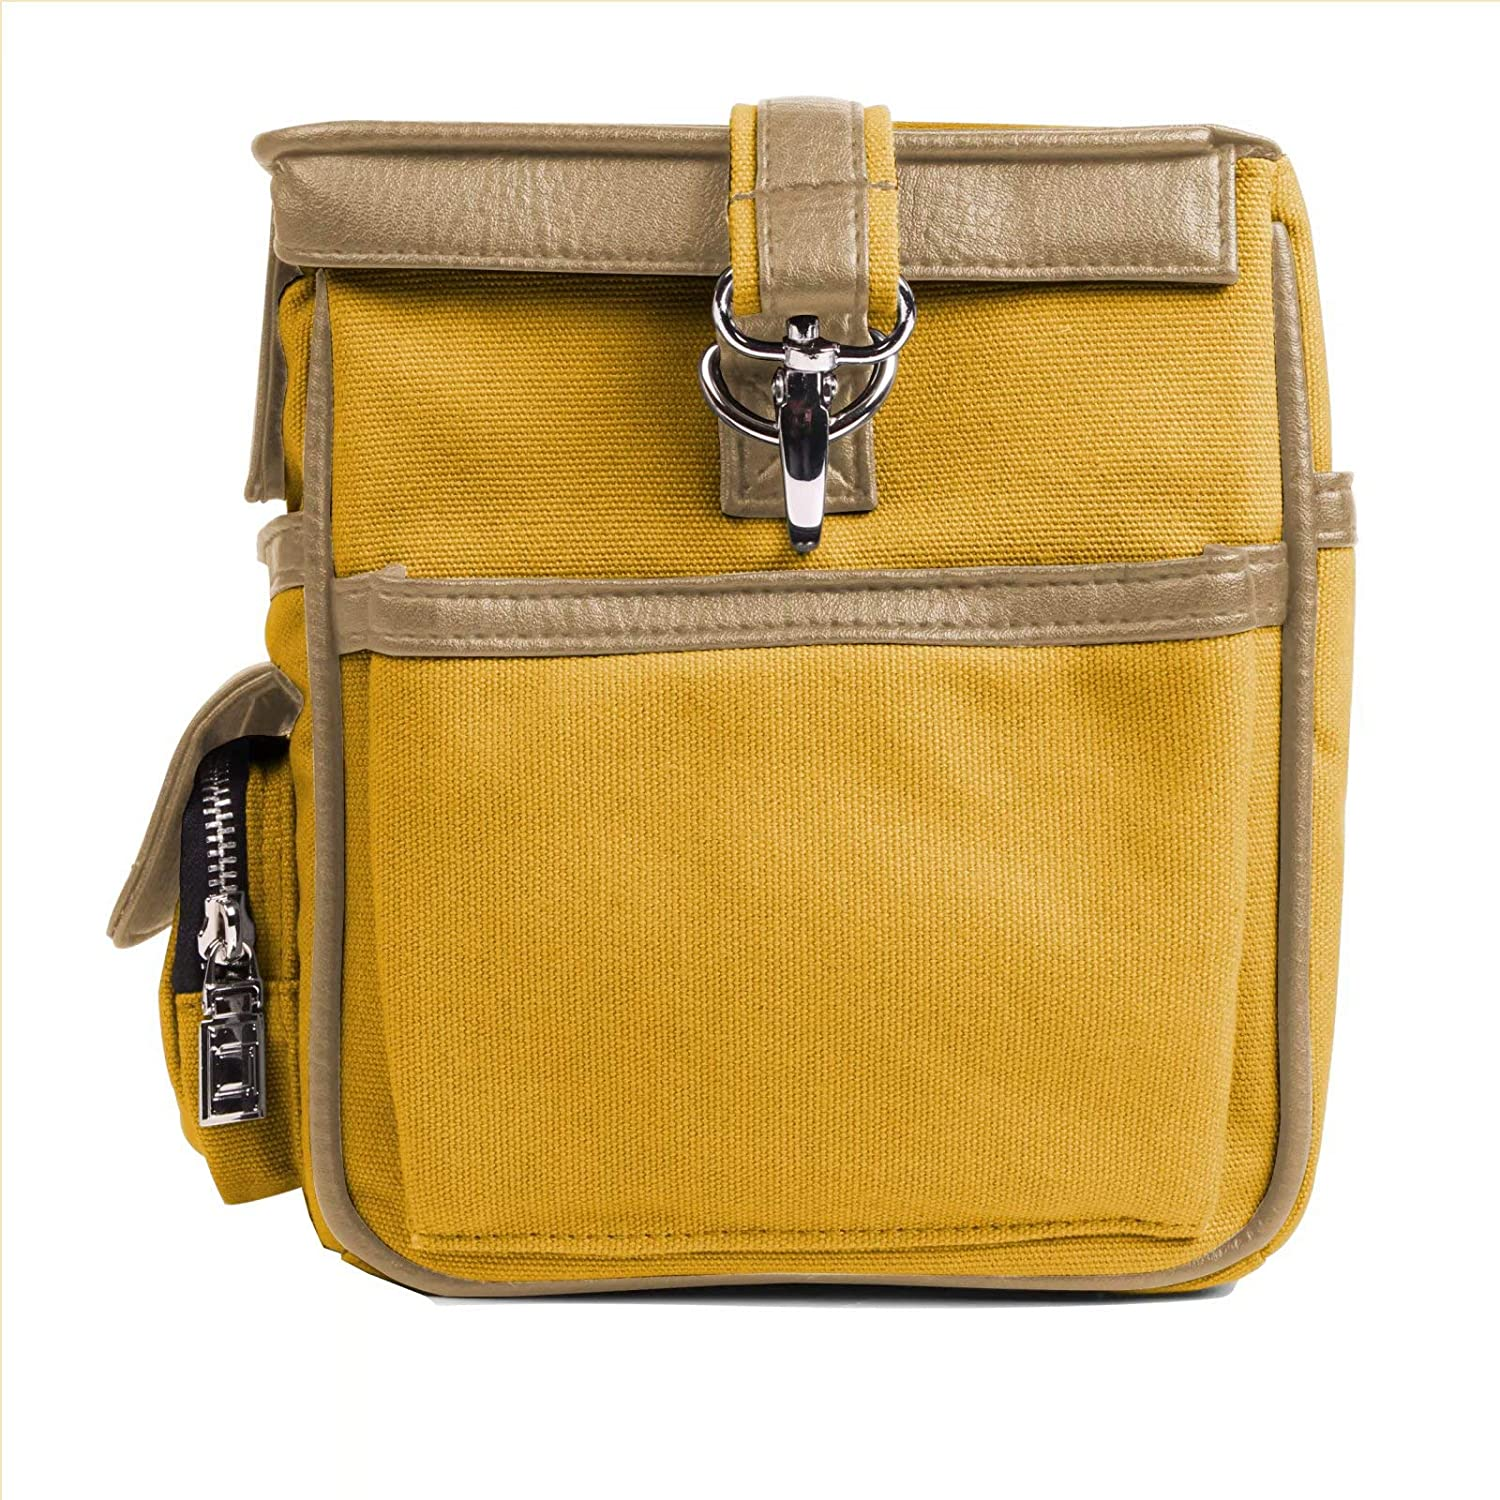 FUJIFILM PENTAX Olympus Yellow, Camel Leather and Canvas Camera Crossbody Bag Case for Canon